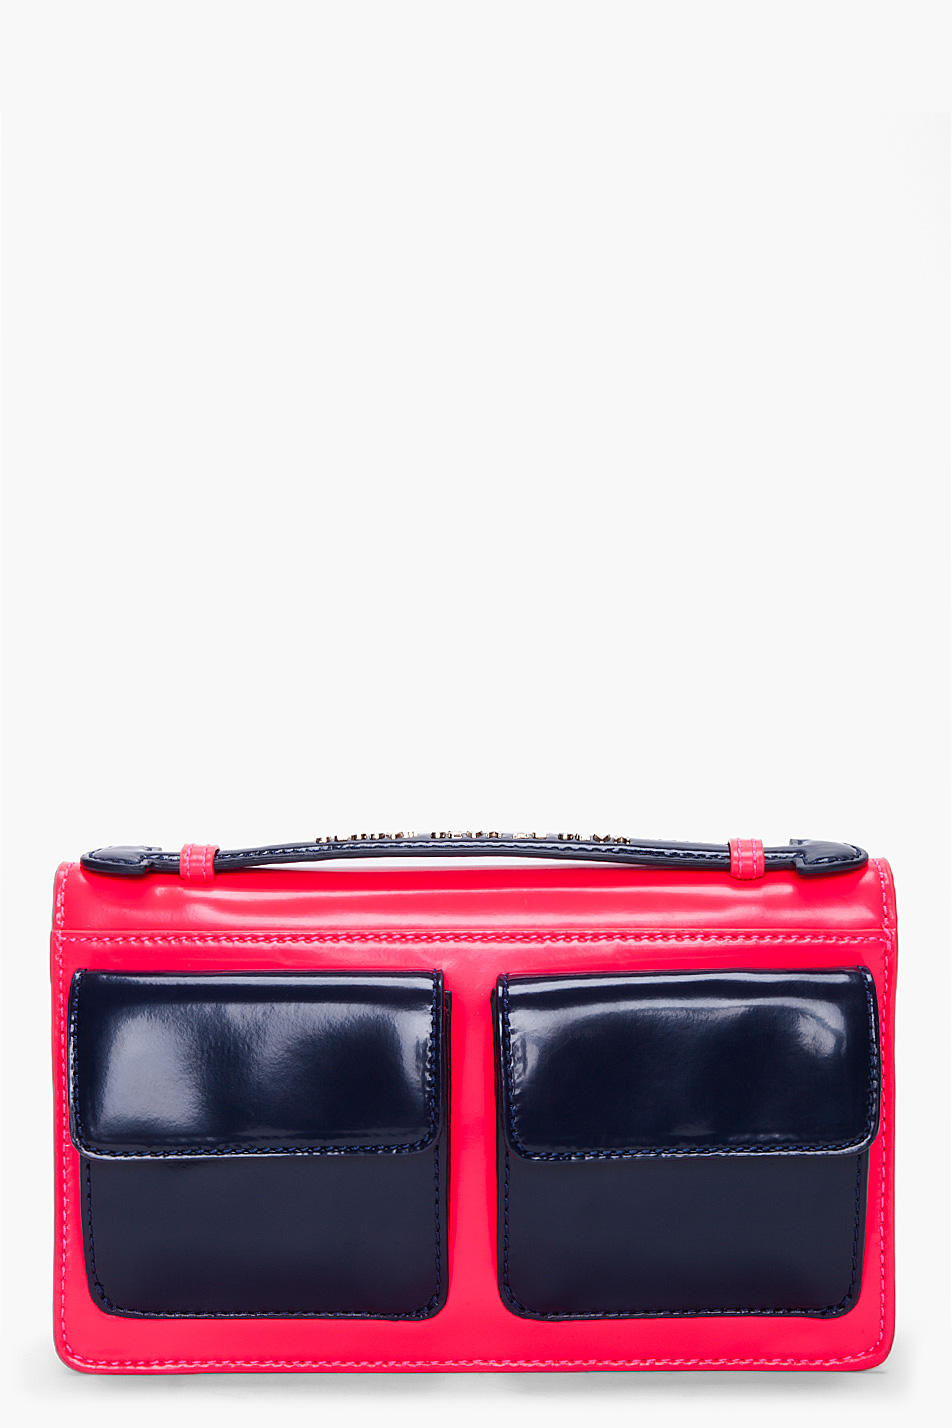 Pink Back Pocket Clutch from Marc by Marc Jacobs